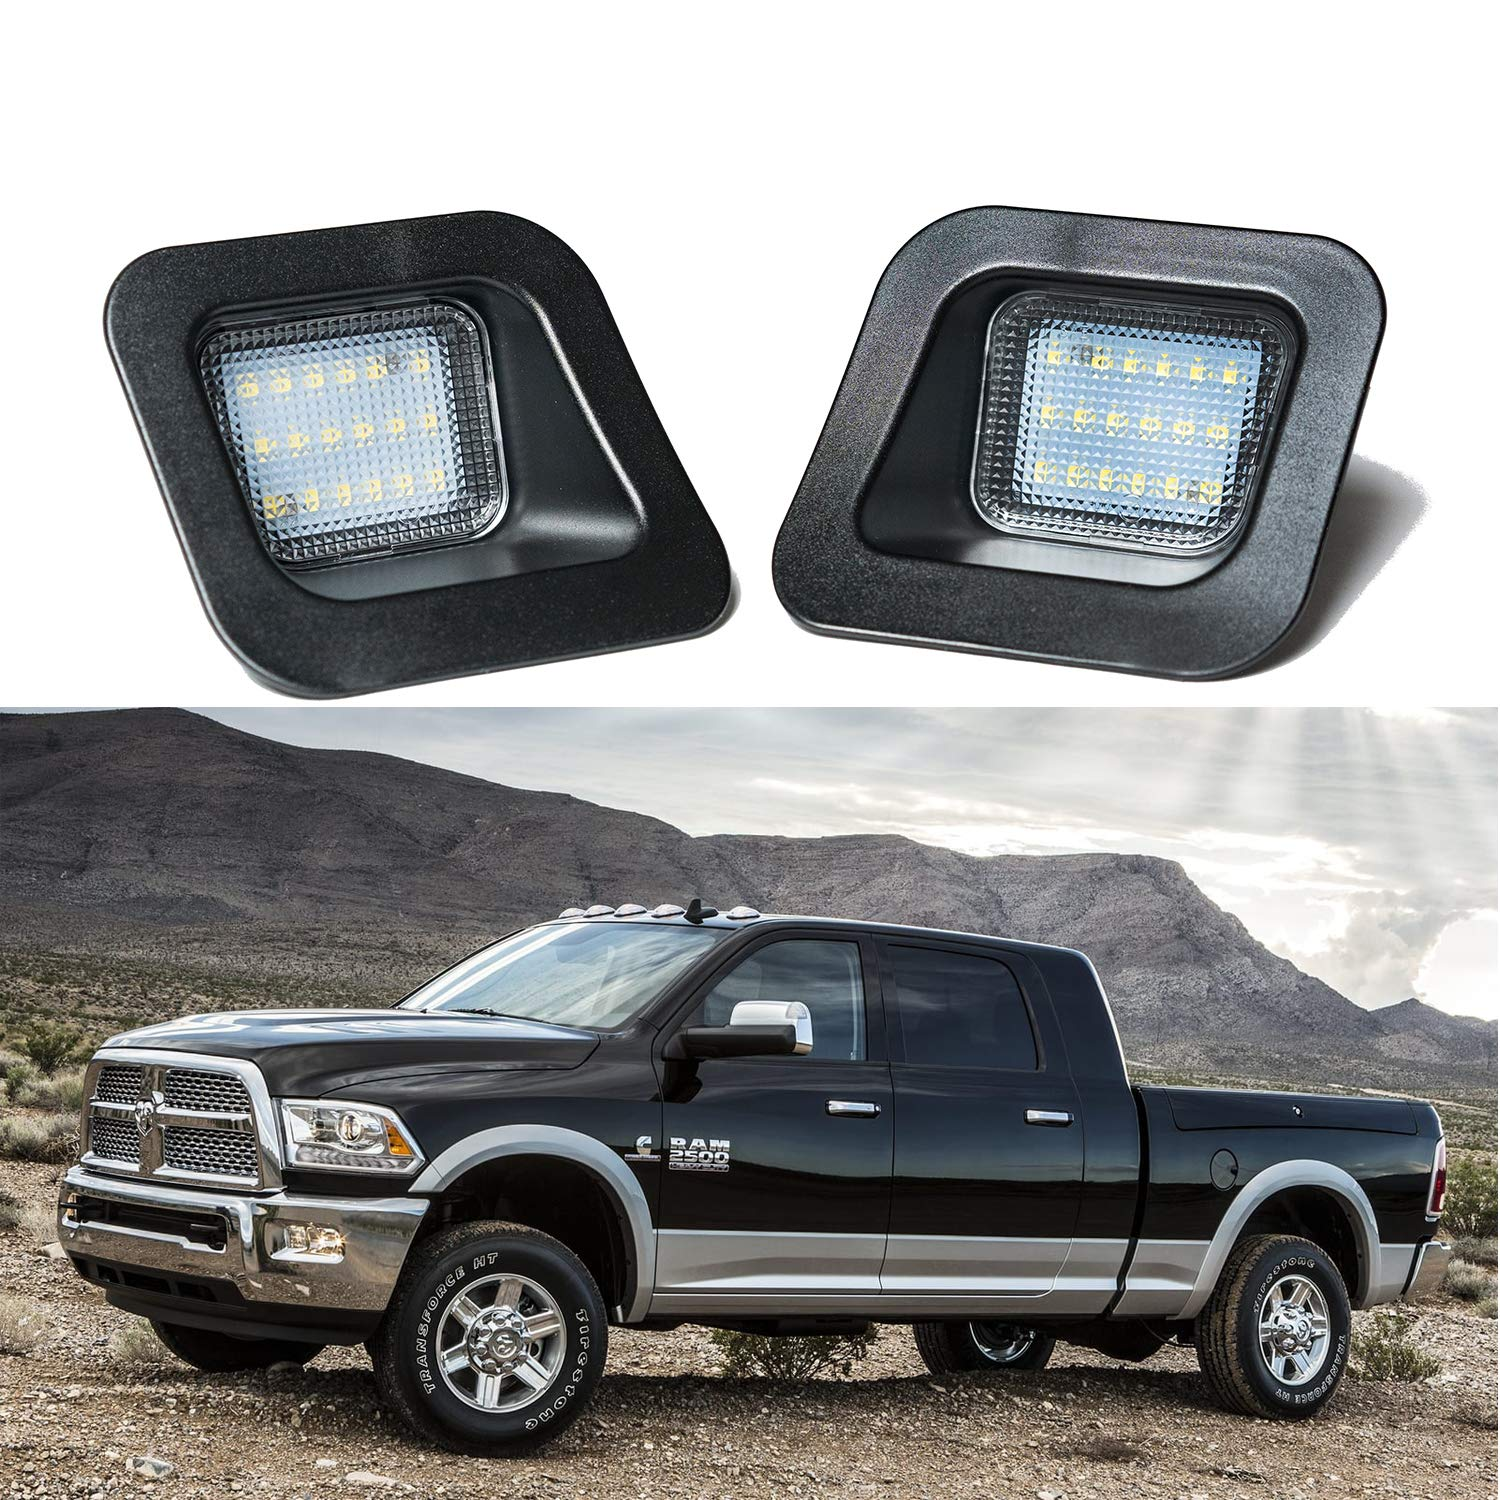 LED License Plate Light Lamp for Dodge Ram 1500 2500 3500 2003-2018 Pick Up Truck